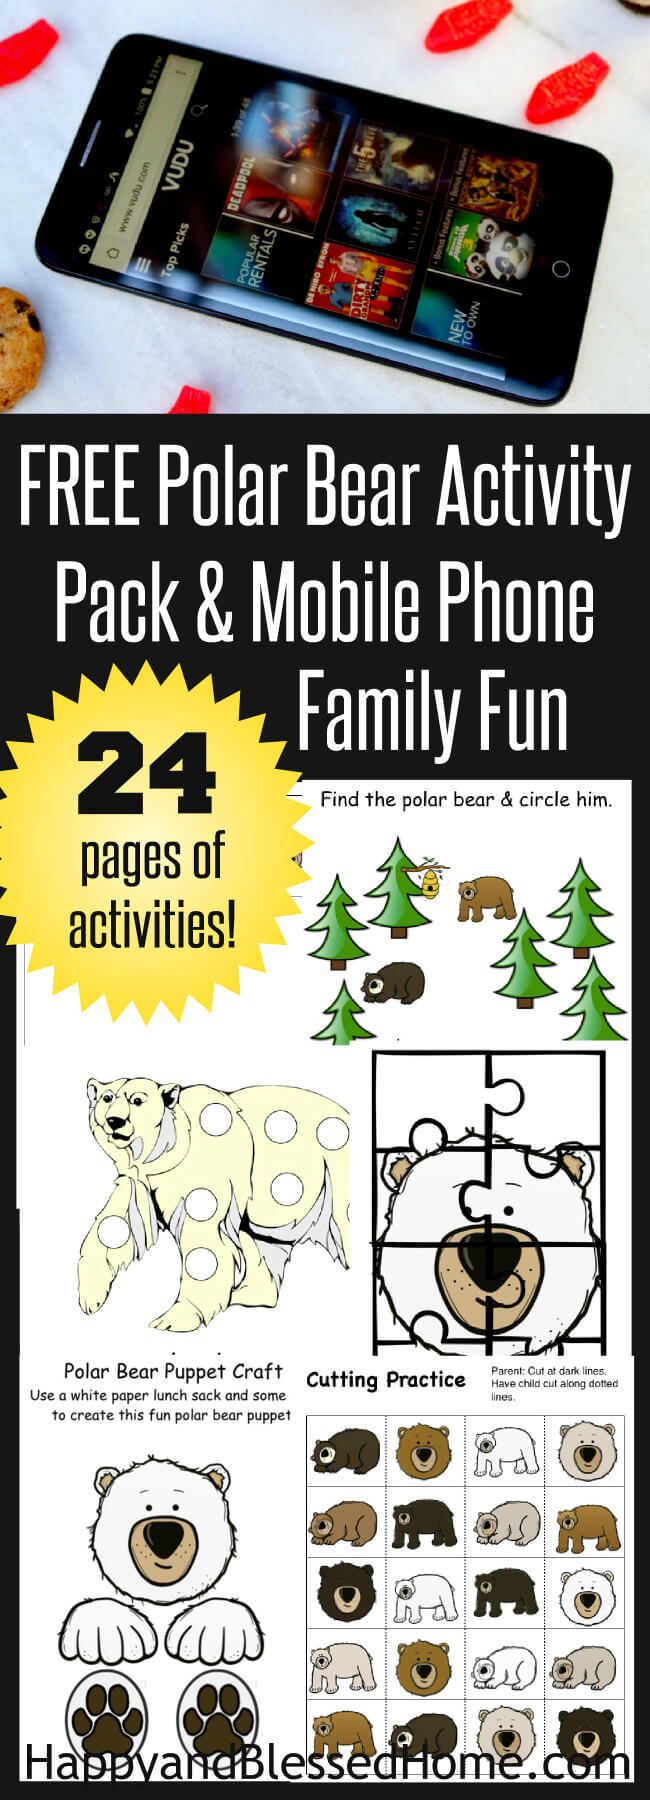 Polar Bear Activity Pack and Mobile Phone Family Fun